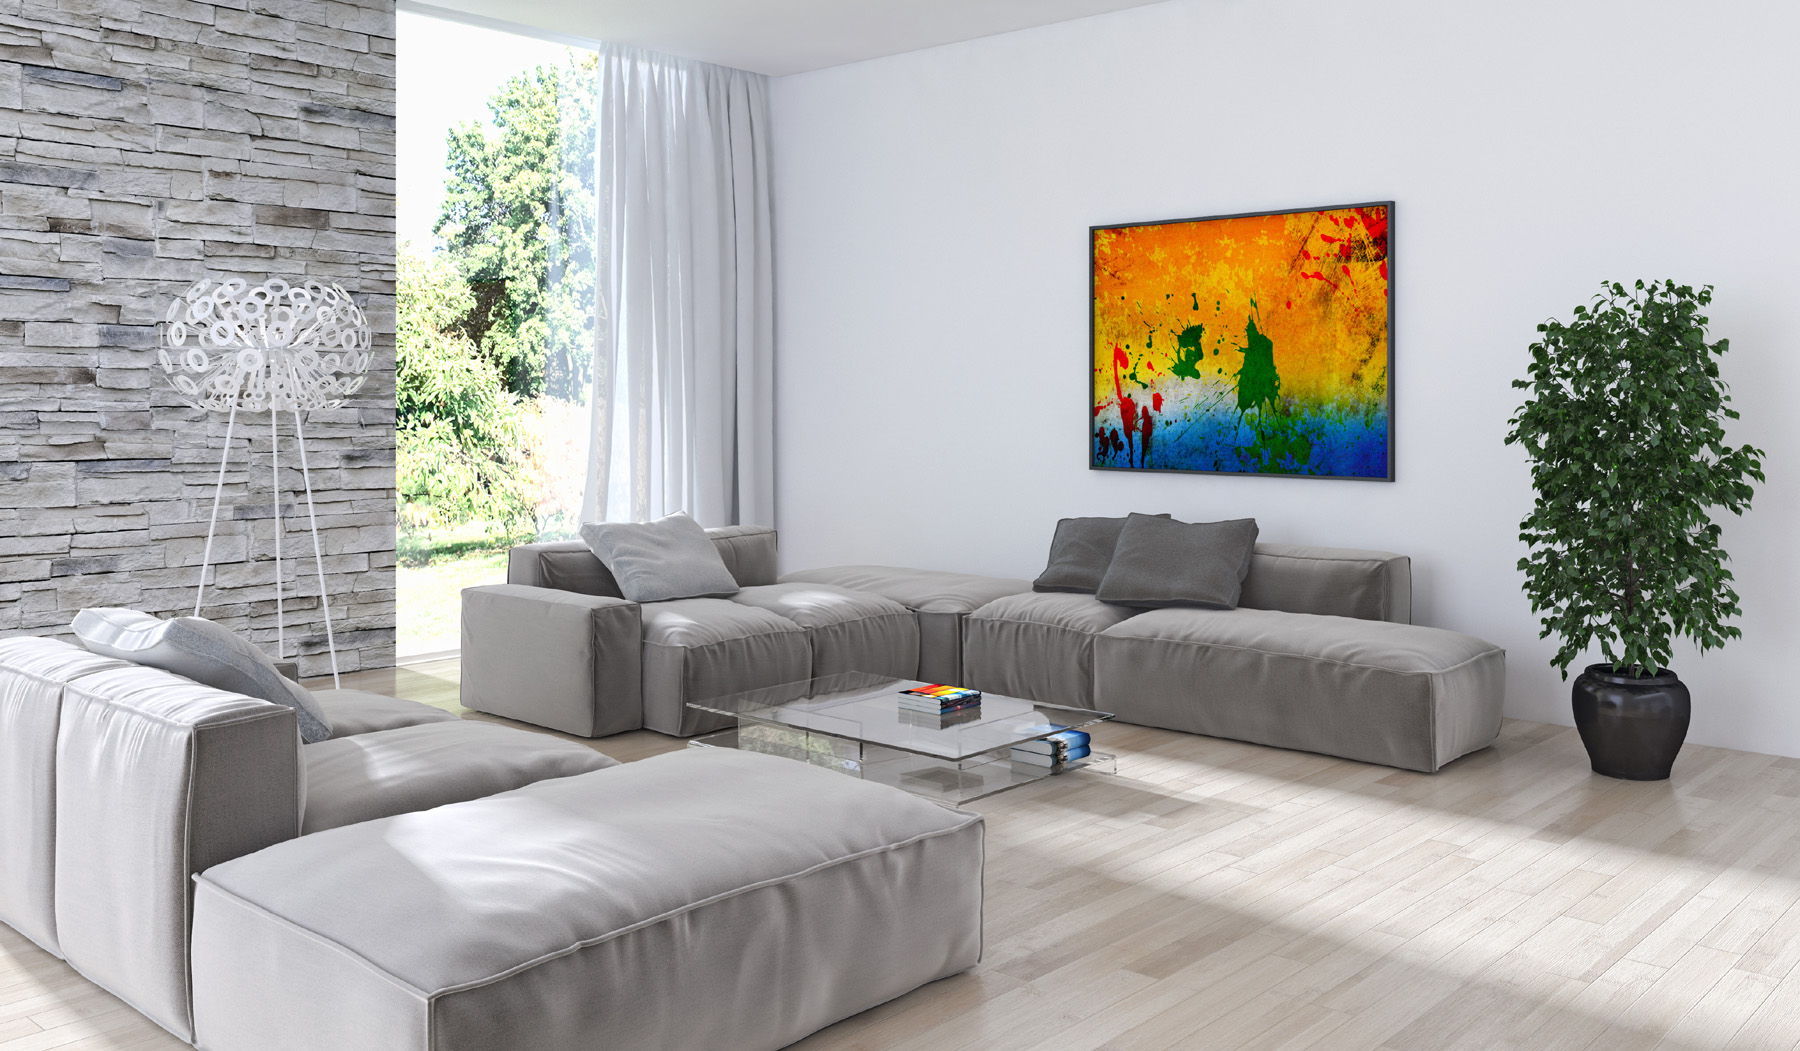 Living room splash effect decorative painting and furniture 51756